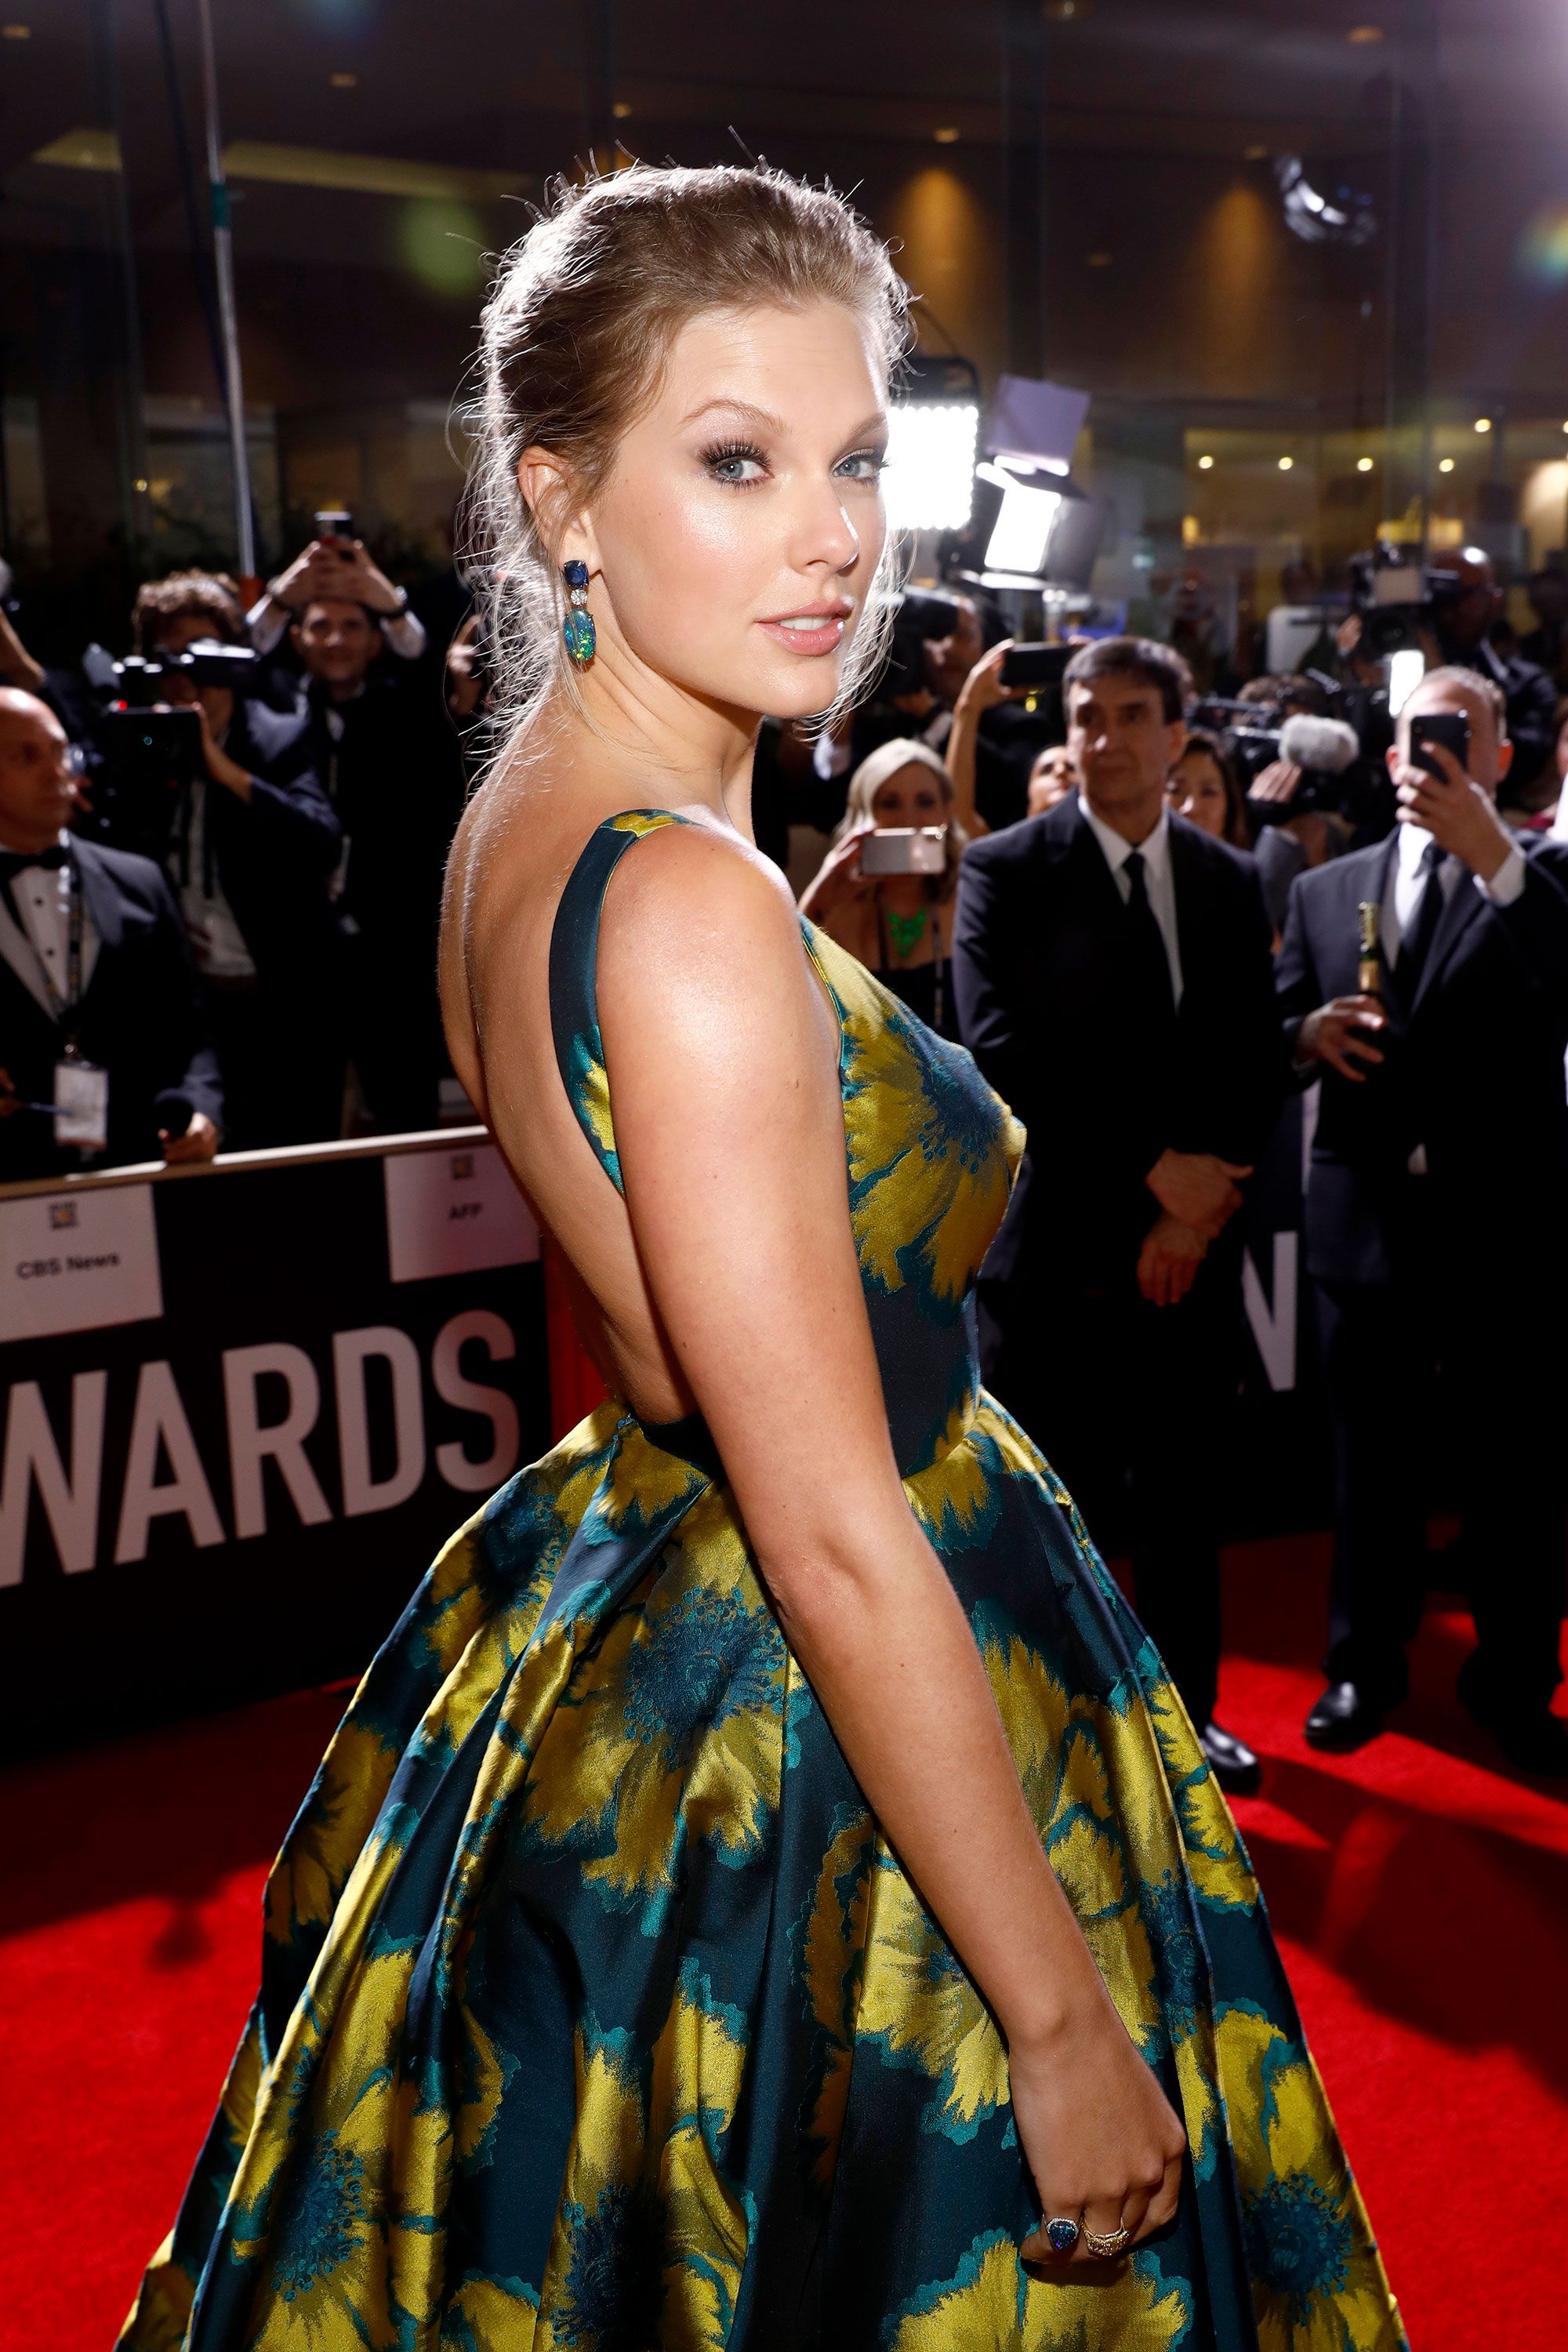 taylor-swift-gettyimages-1191955342.jpg